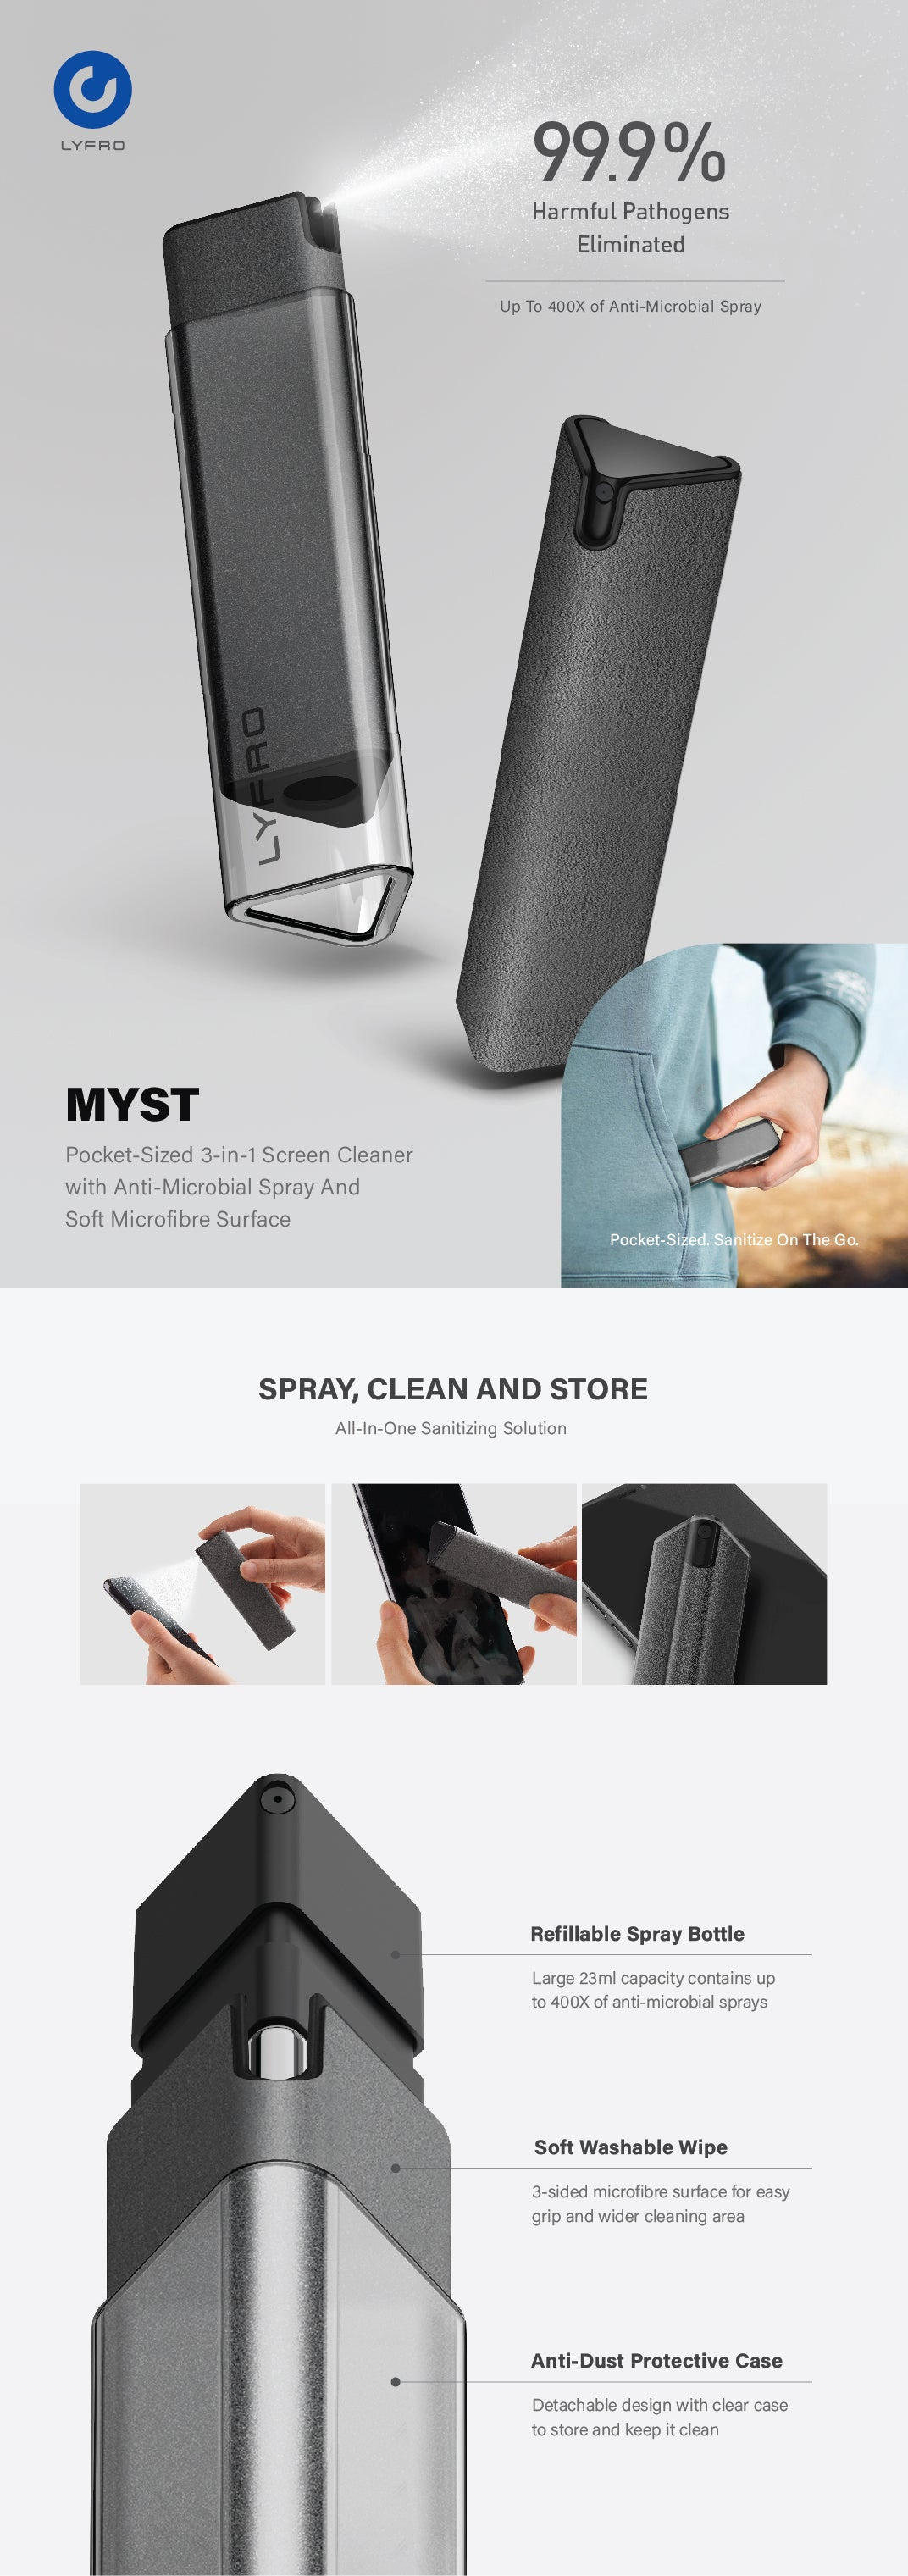 UNIQ | LYFRO Myst 3-in-1 Anti-Microbial Screen Cleaner To Sanitize On The Go